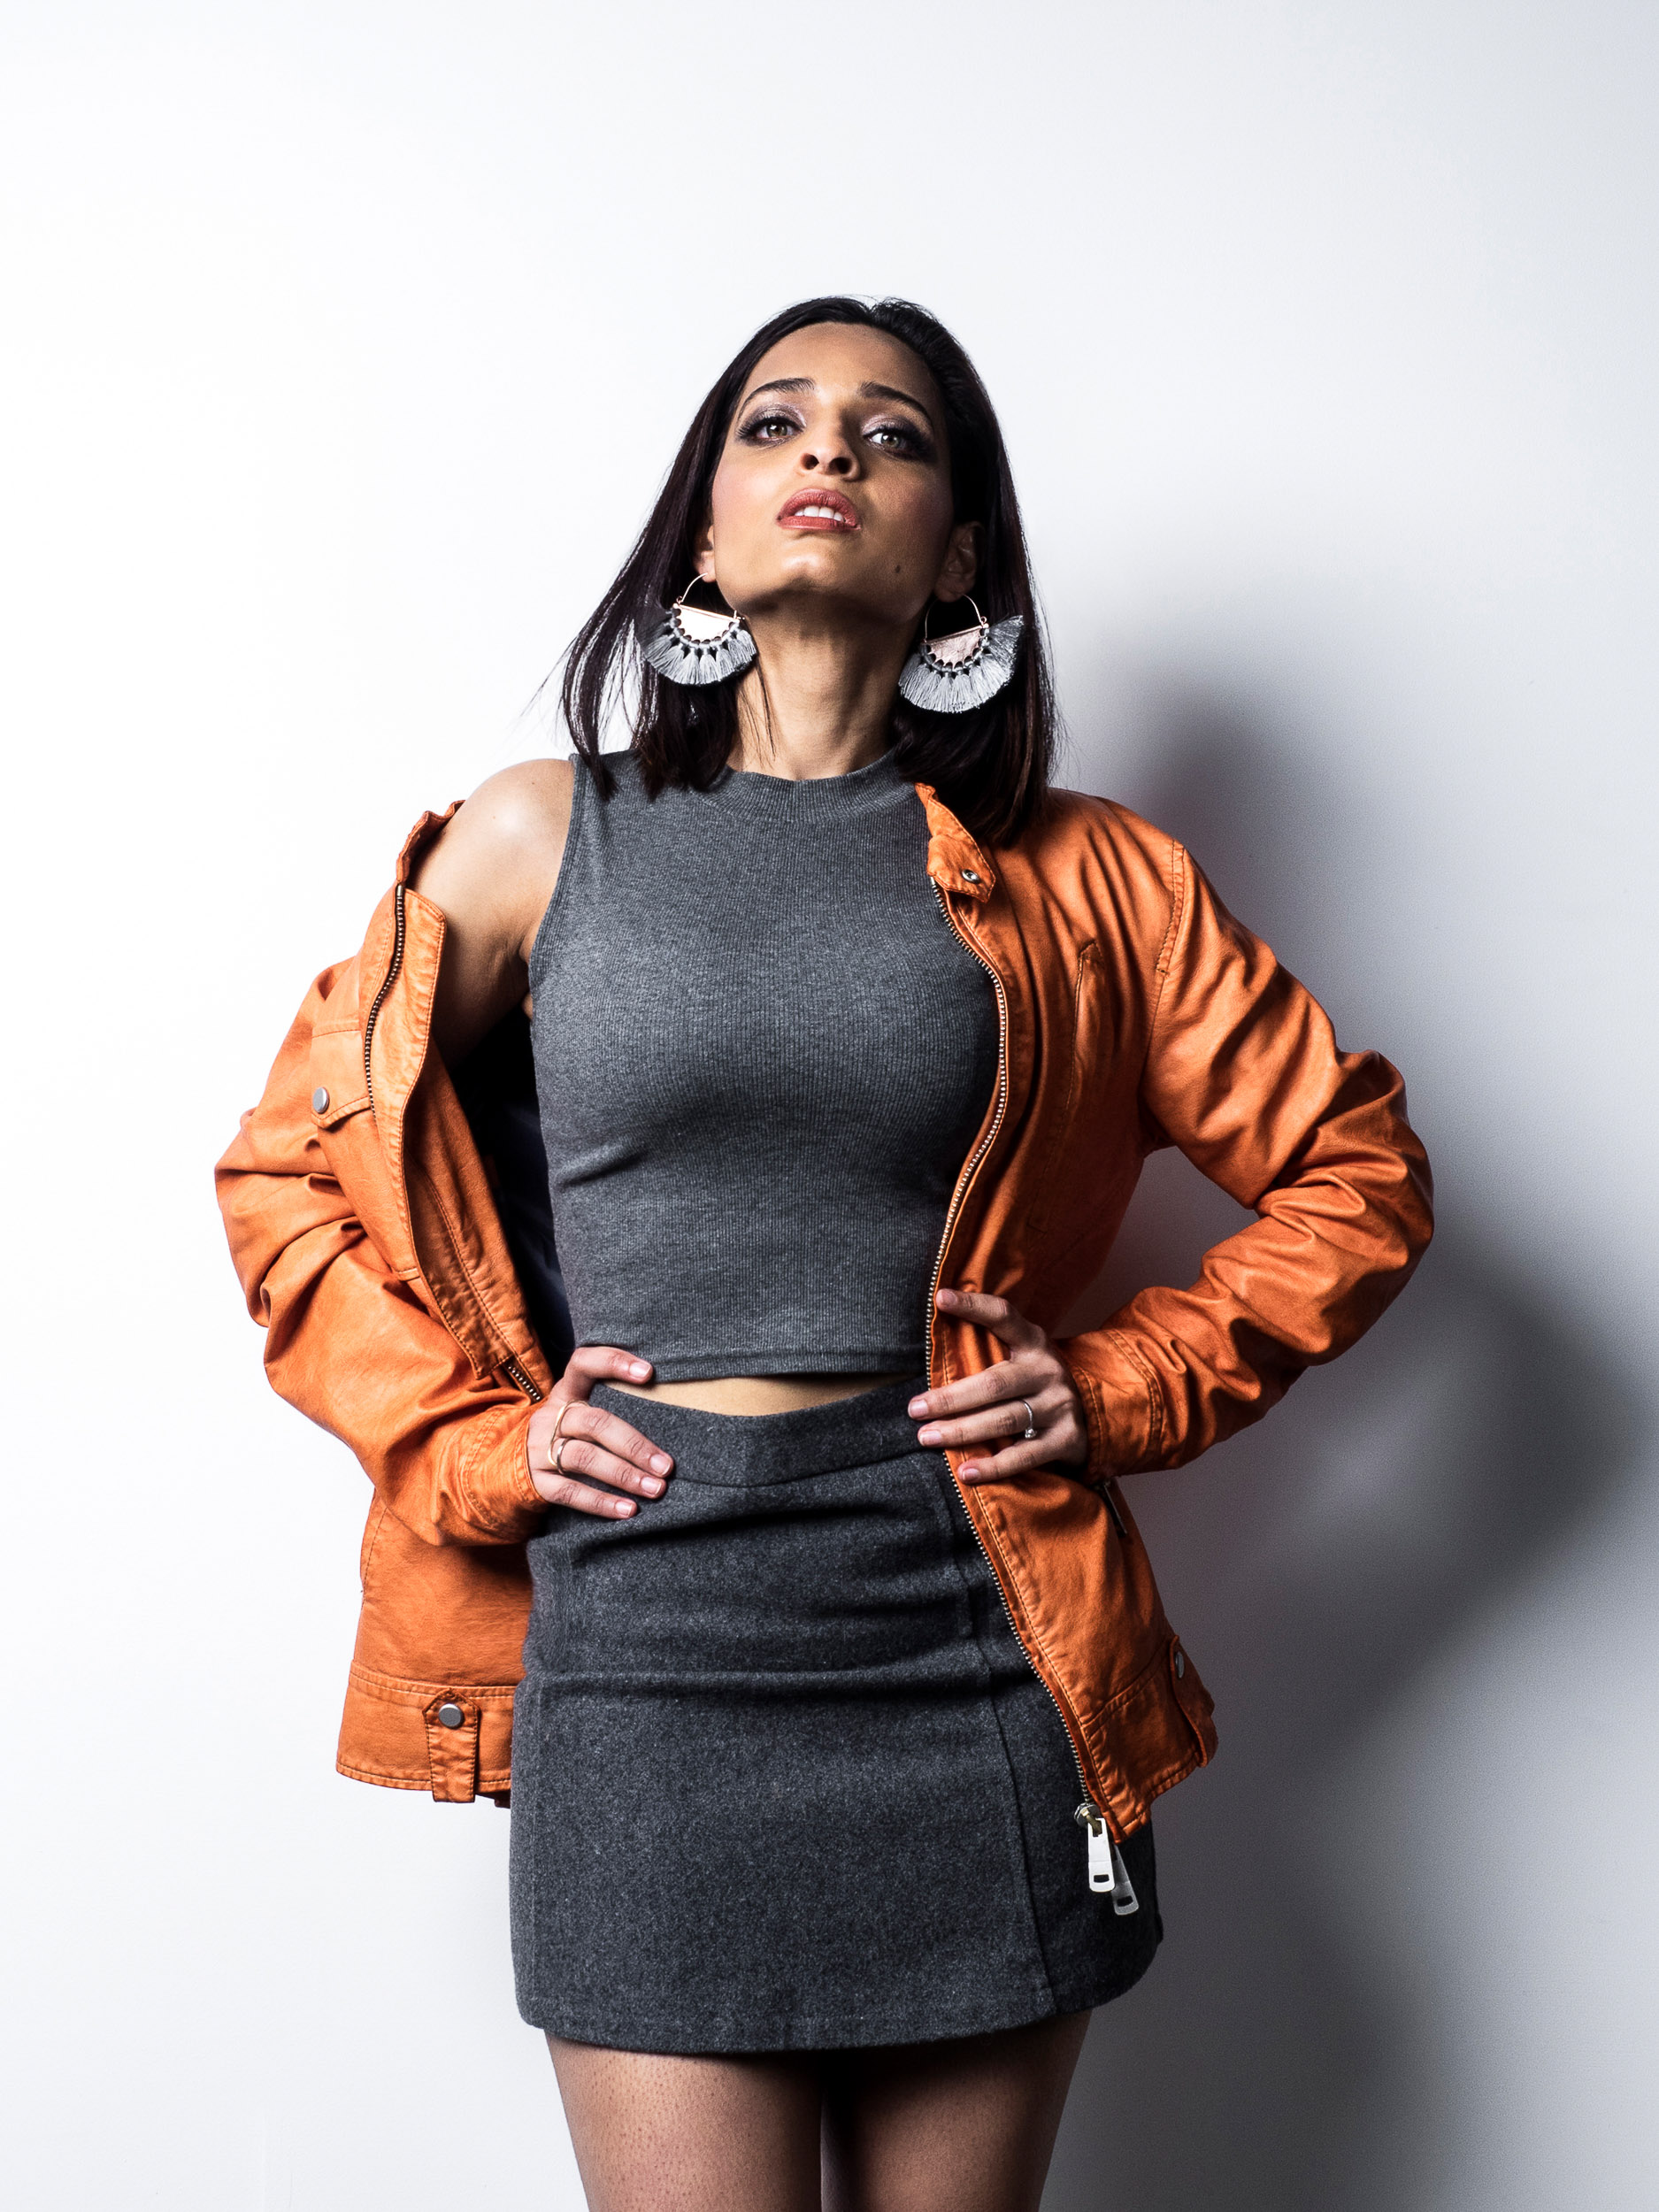 Studio photo of girl in short hair wearing gray matching skirt and top with orange leather jacket.